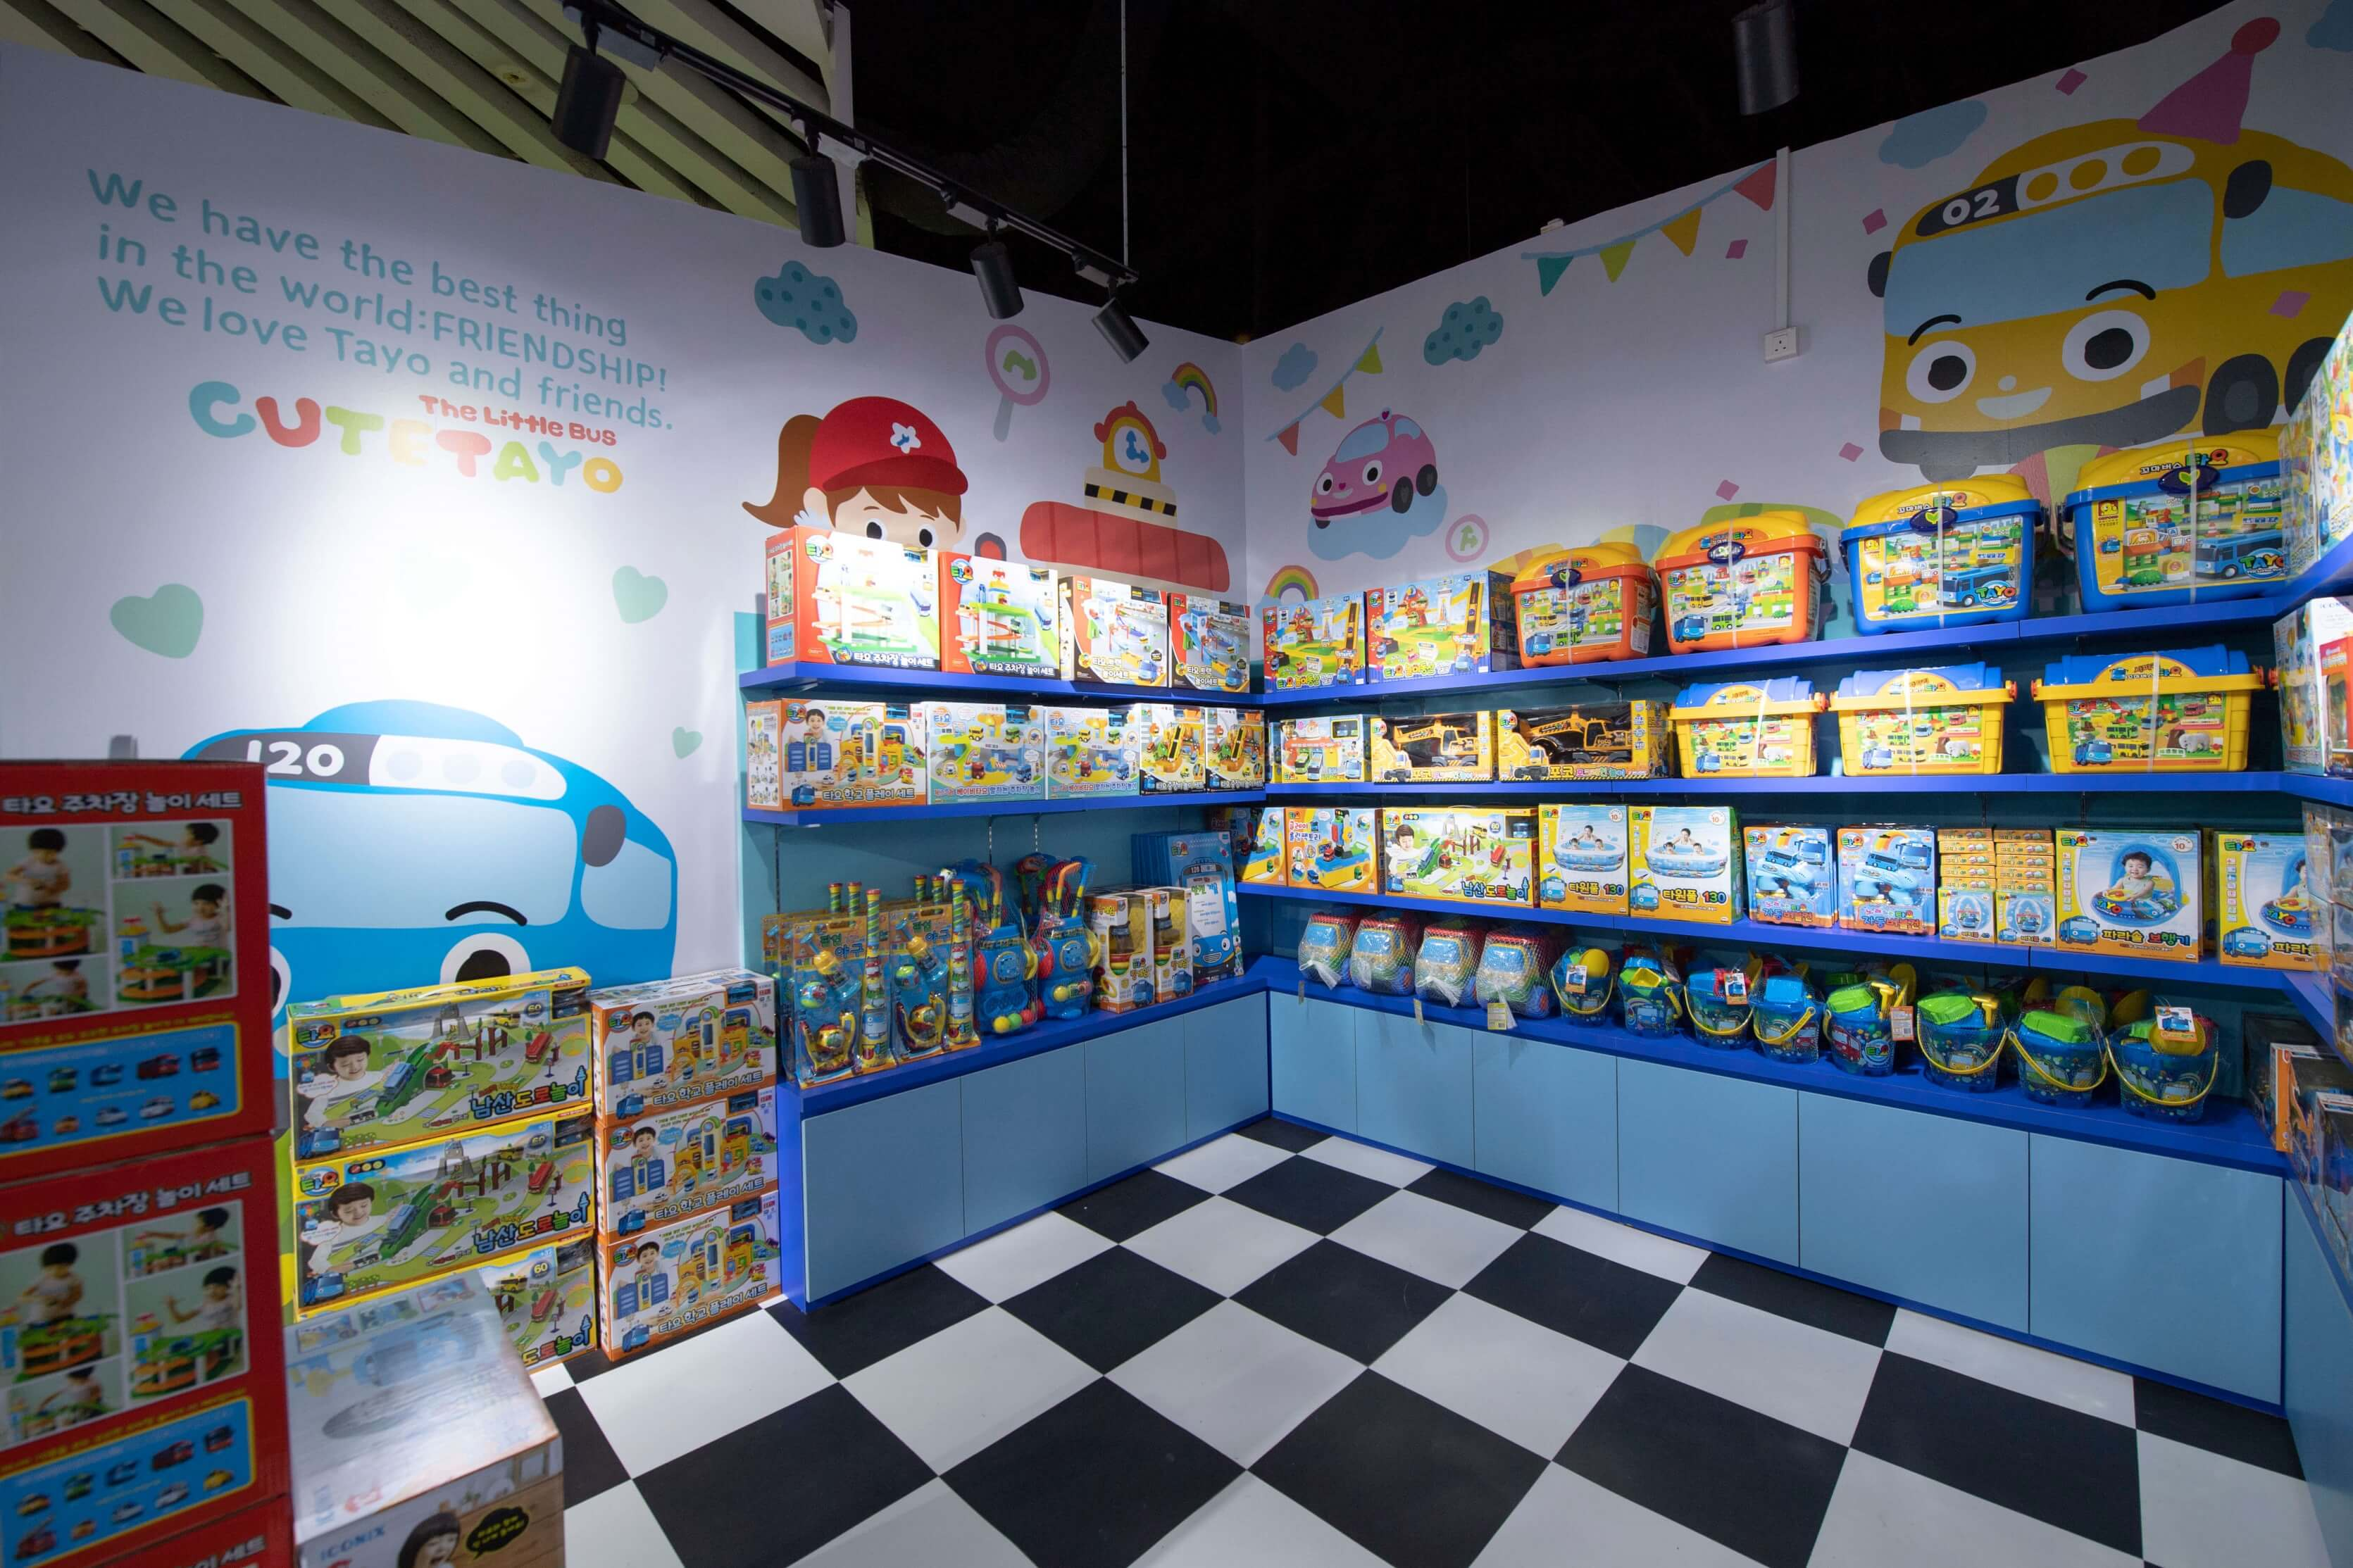 Tayo's Toy Store | Tayo Station